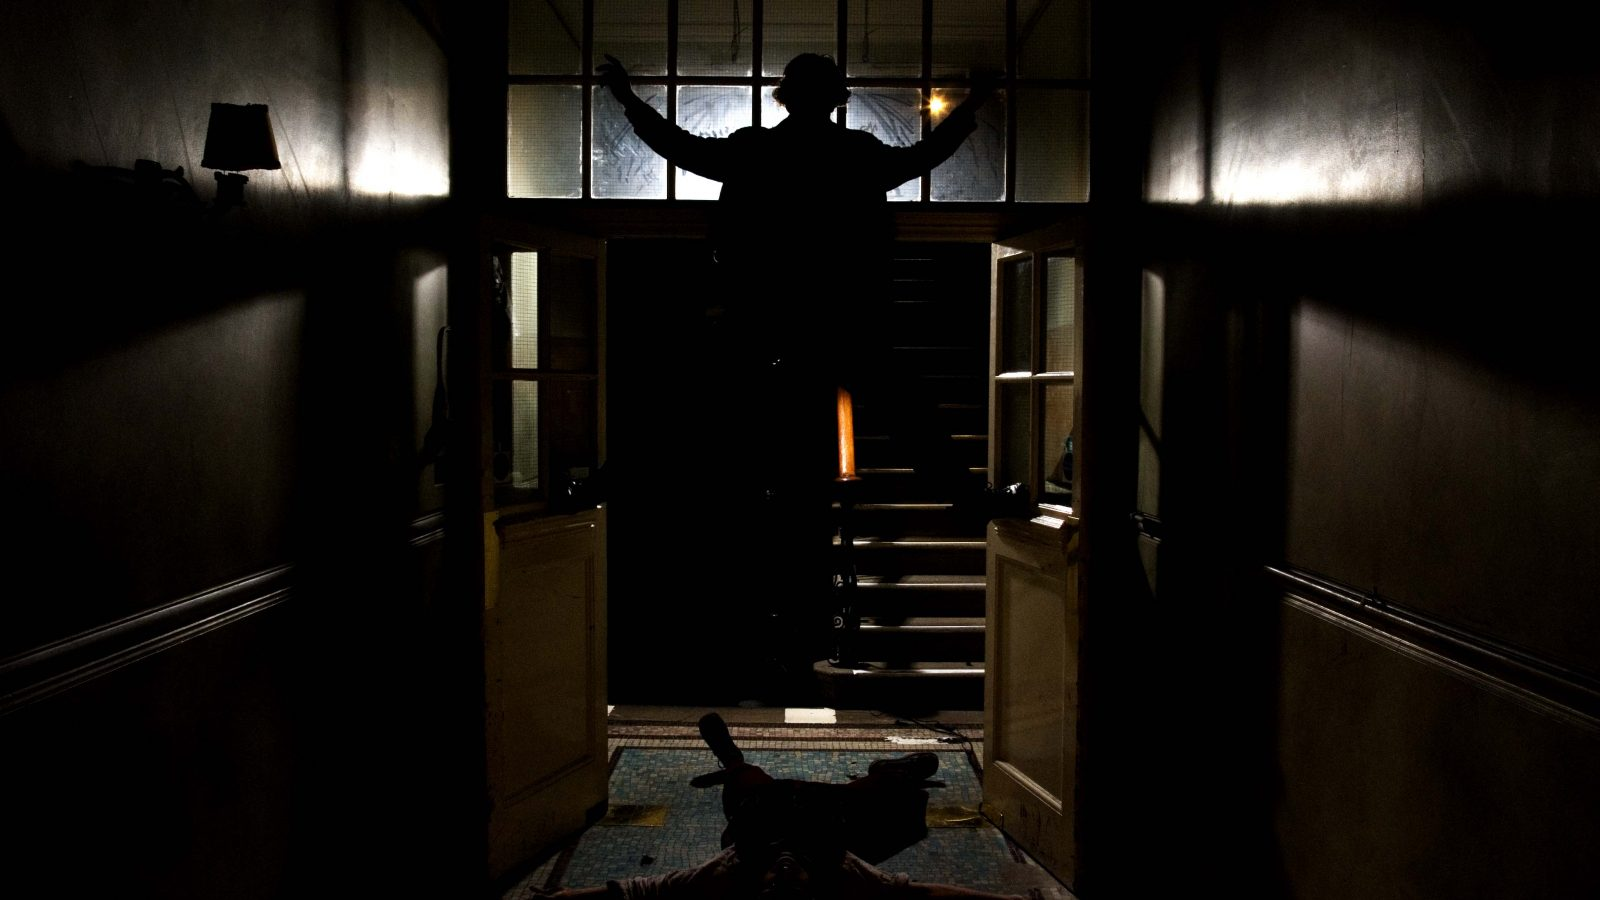 Silhouette of a man standing above another man on the floor of a hallway